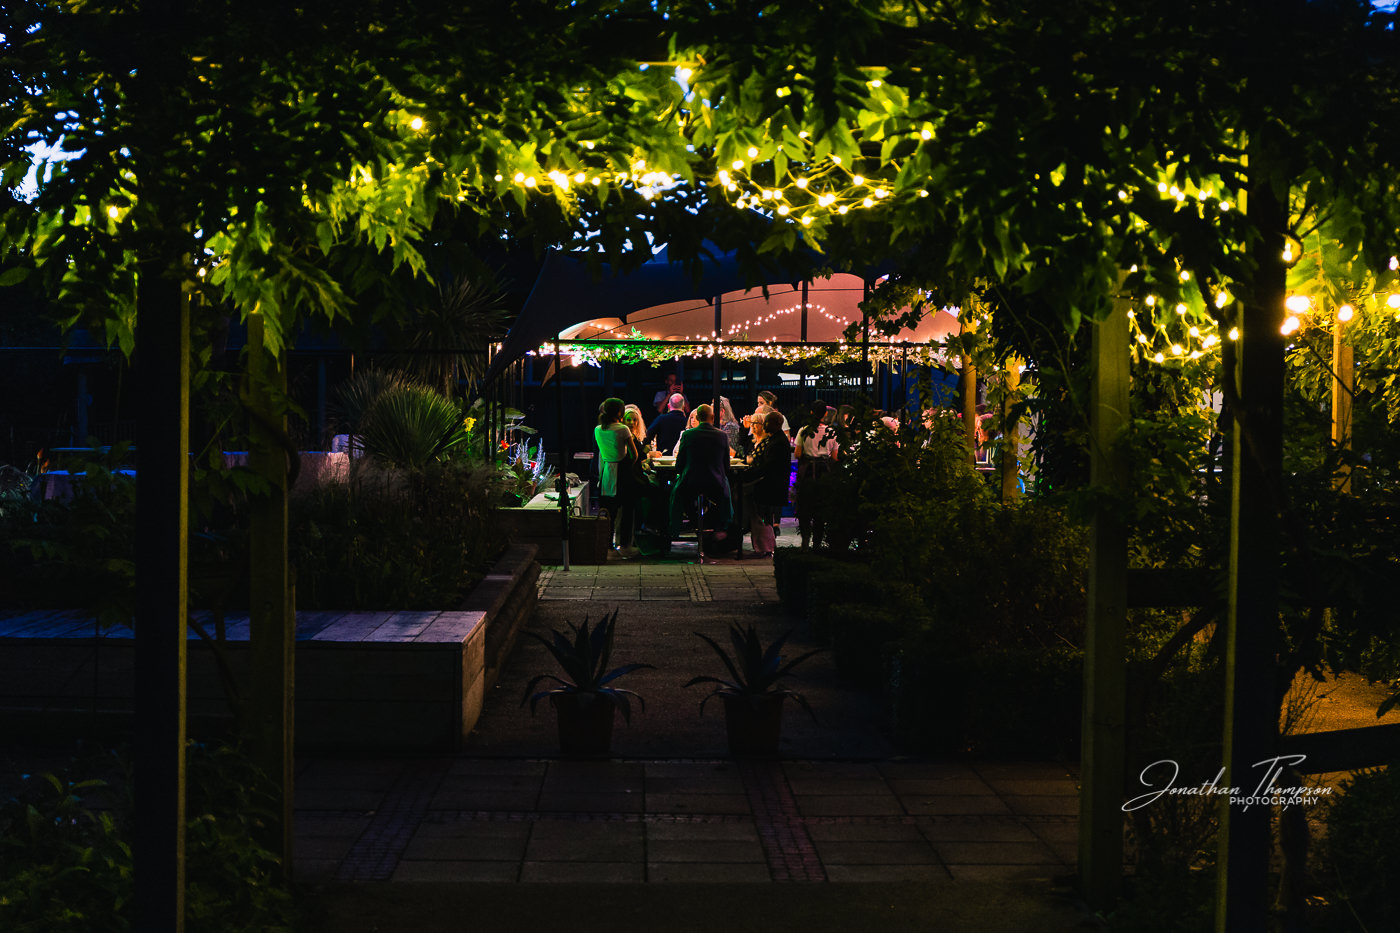 Dark evening scene looking under a foliage arch with fairy lights. A short distance away there are a group of people sitting at tables. Chester Zoo